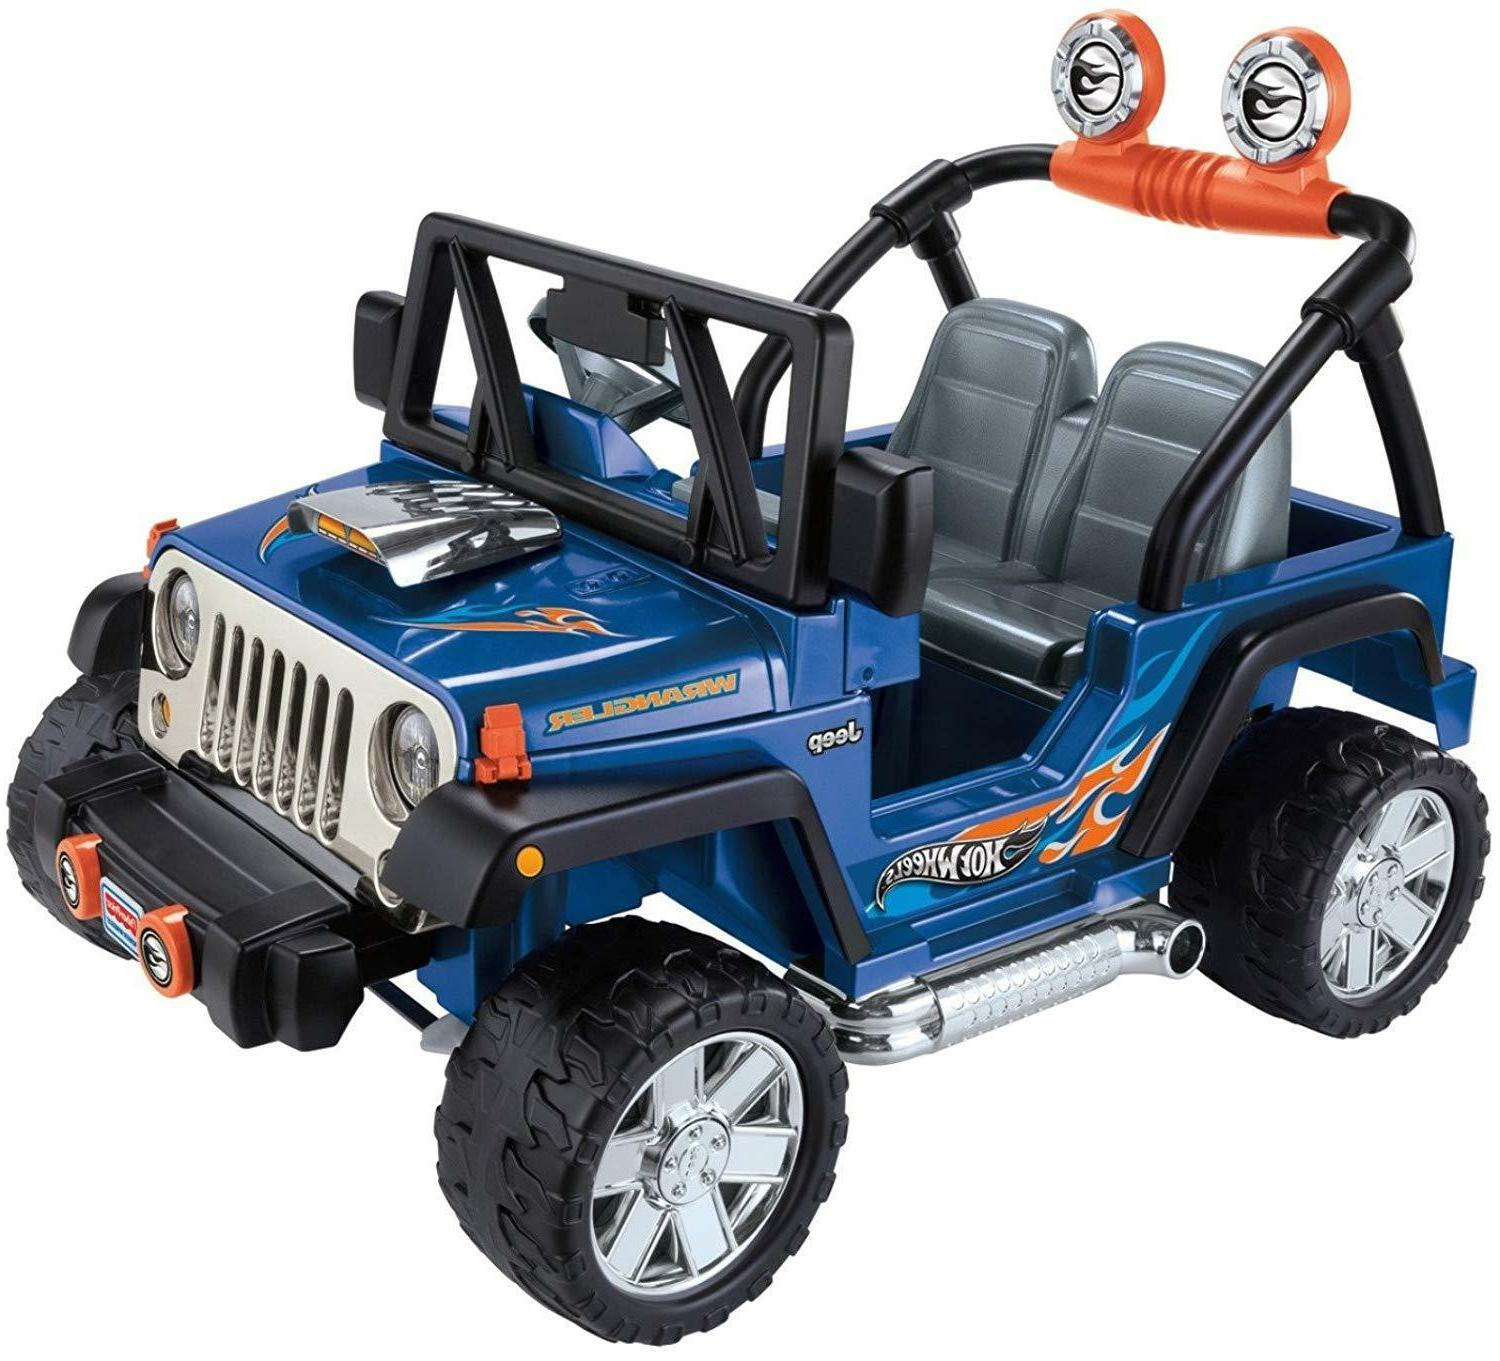 12V 2 WRANGLER ELECTRIC KIDS RIDE ON 2 SPEED/DIRECTIONS